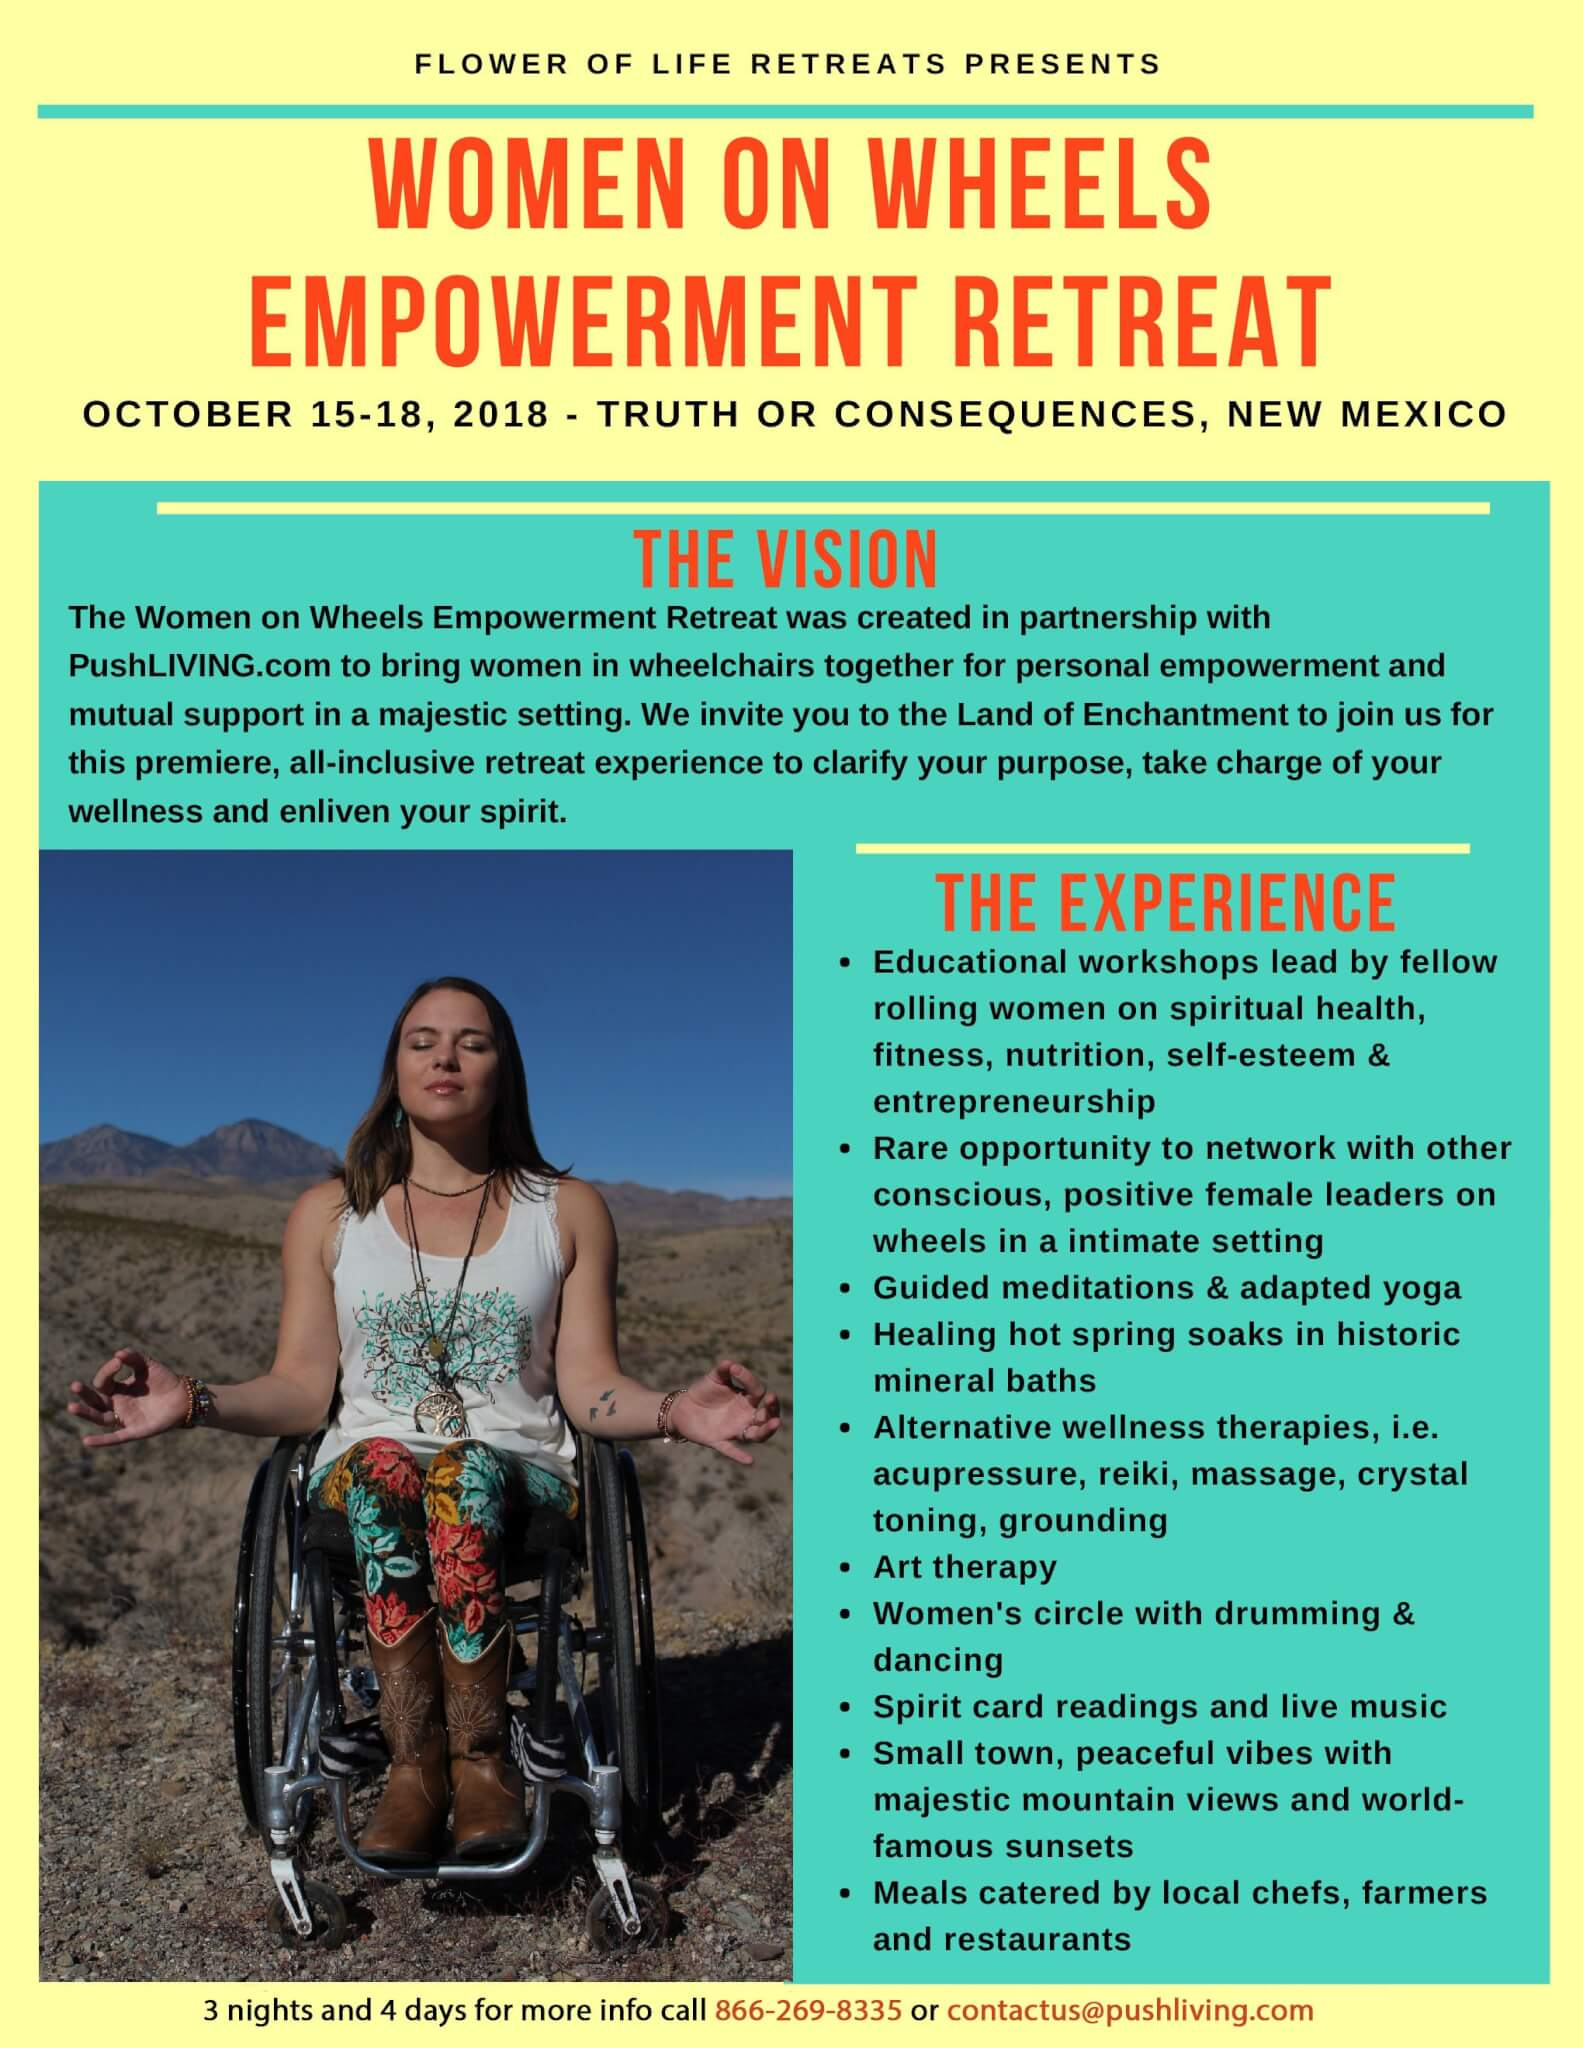 Women on wheels empowerment retreat - WOW: Woman on Wheels Fueling Empowerment